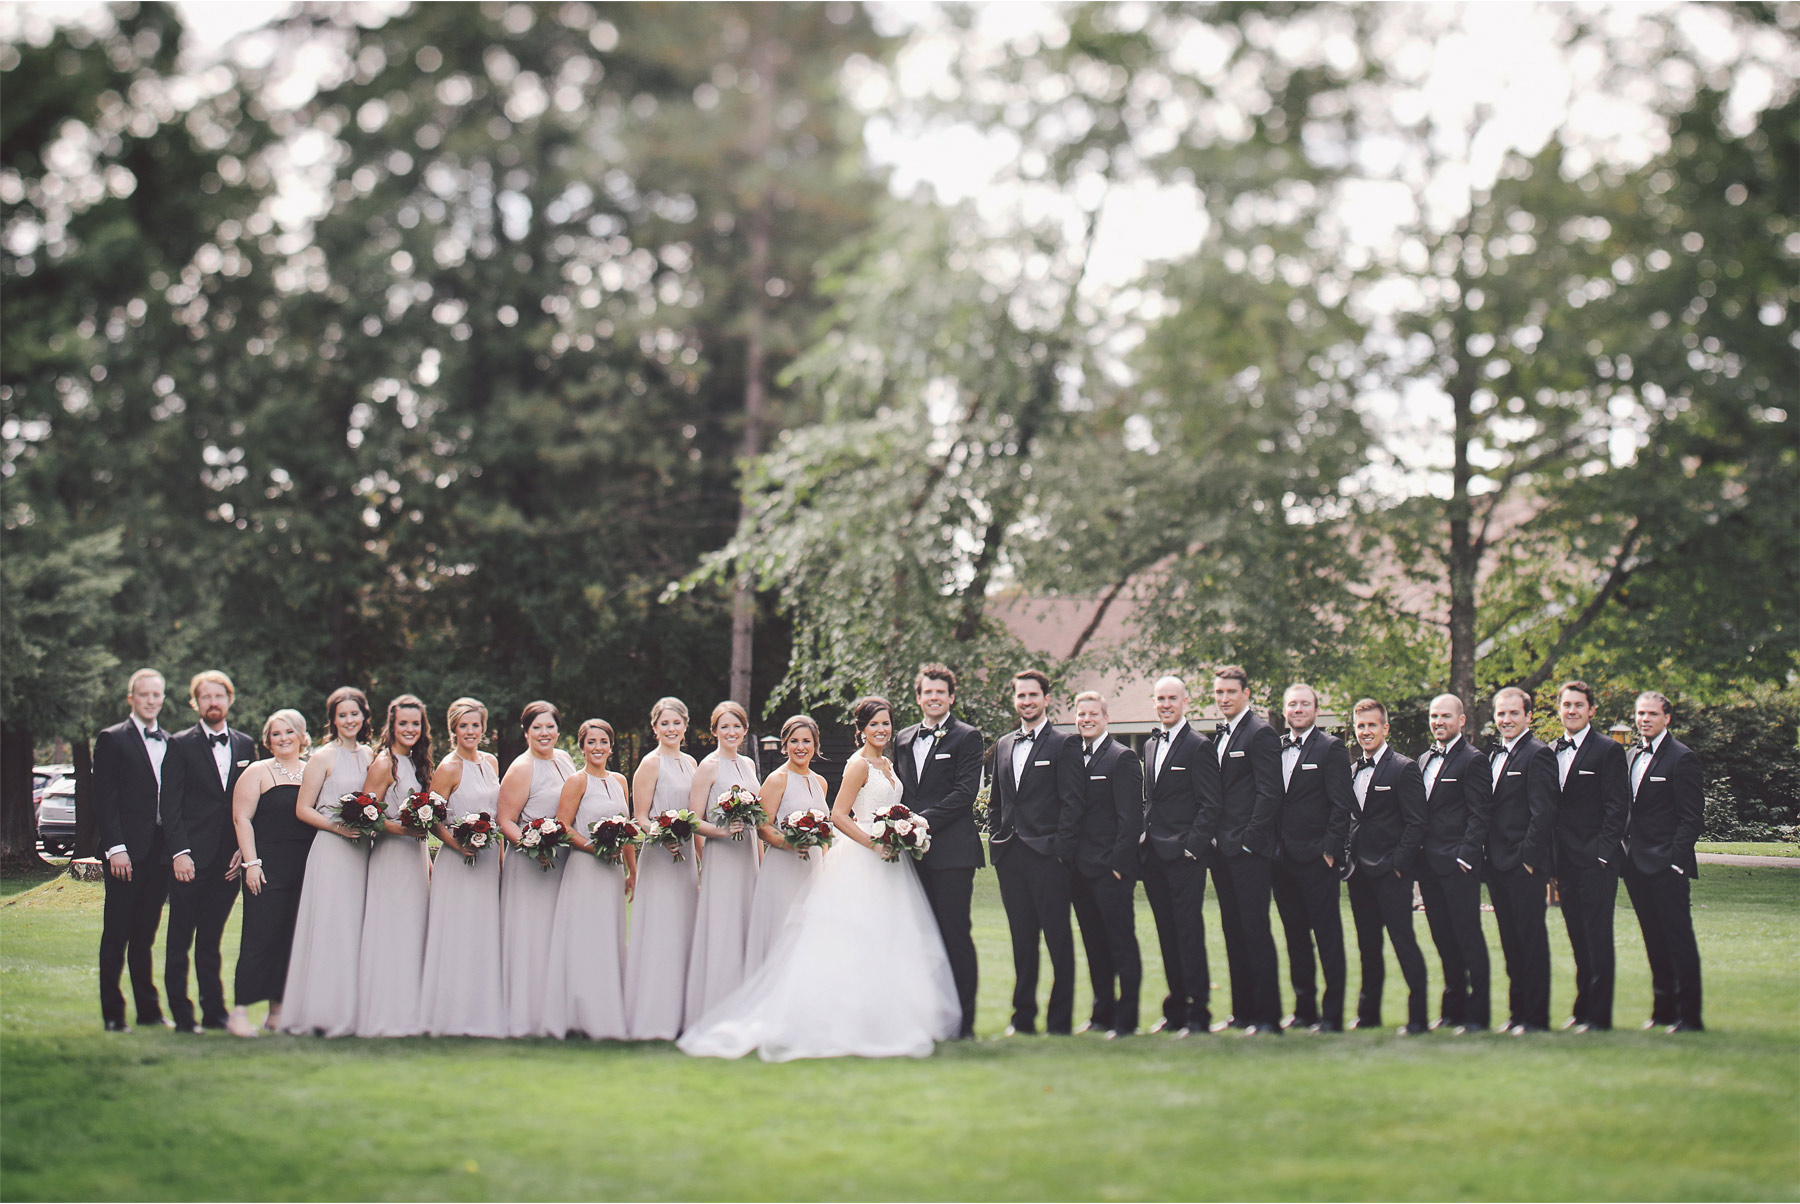 10-Brainerd-Minnesota-Wedding-Photography-by-Vick-Photography-Grand-View-Lodge-Woods-Wedding-Party-Groups-Bethany-and-Anthony.jpg